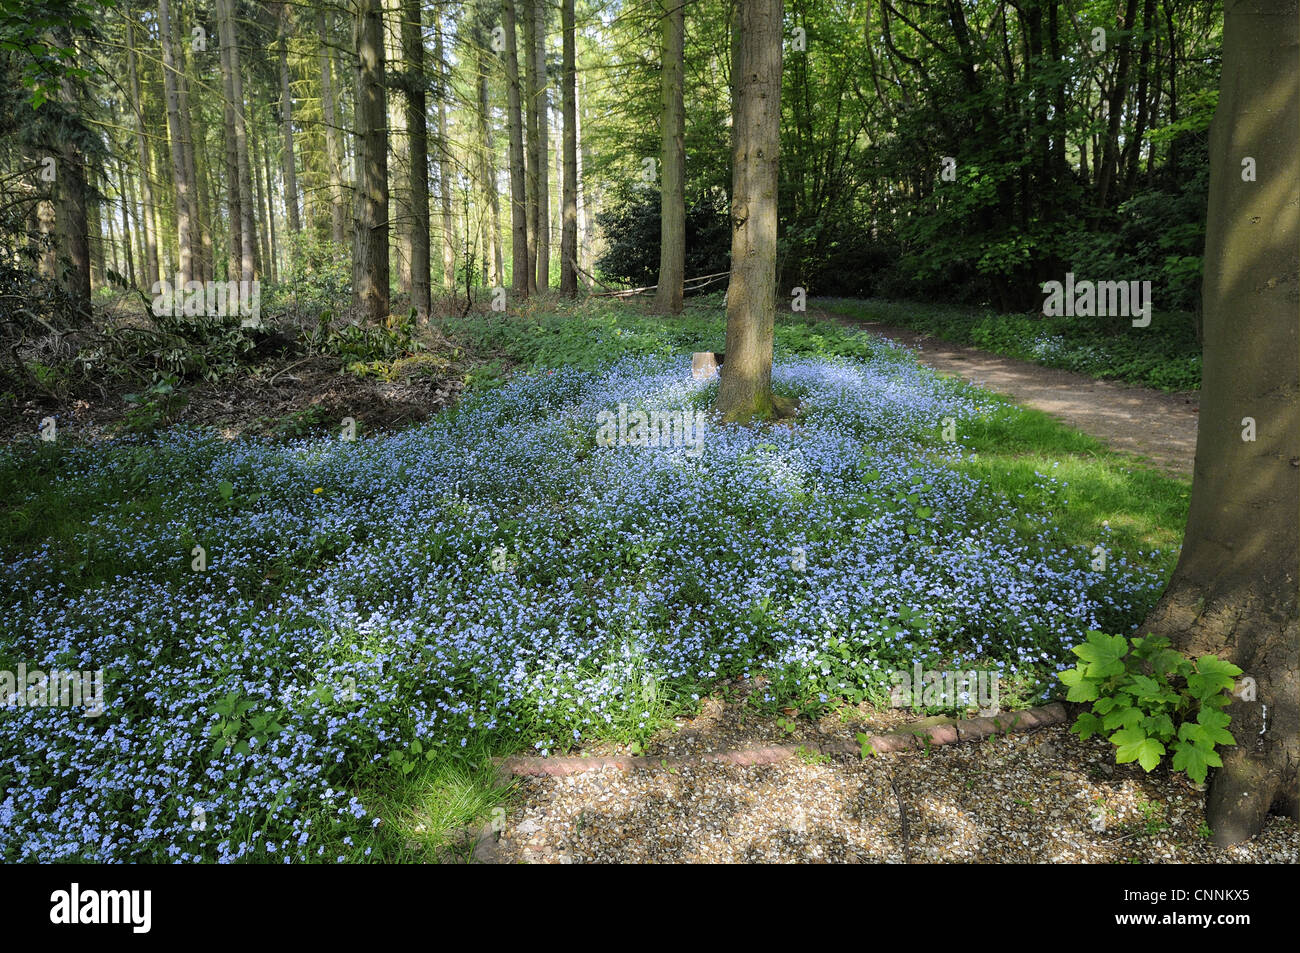 wood forget me not myosotis sylvatica flowering mass growing in stock photo 47805133 alamy. Black Bedroom Furniture Sets. Home Design Ideas